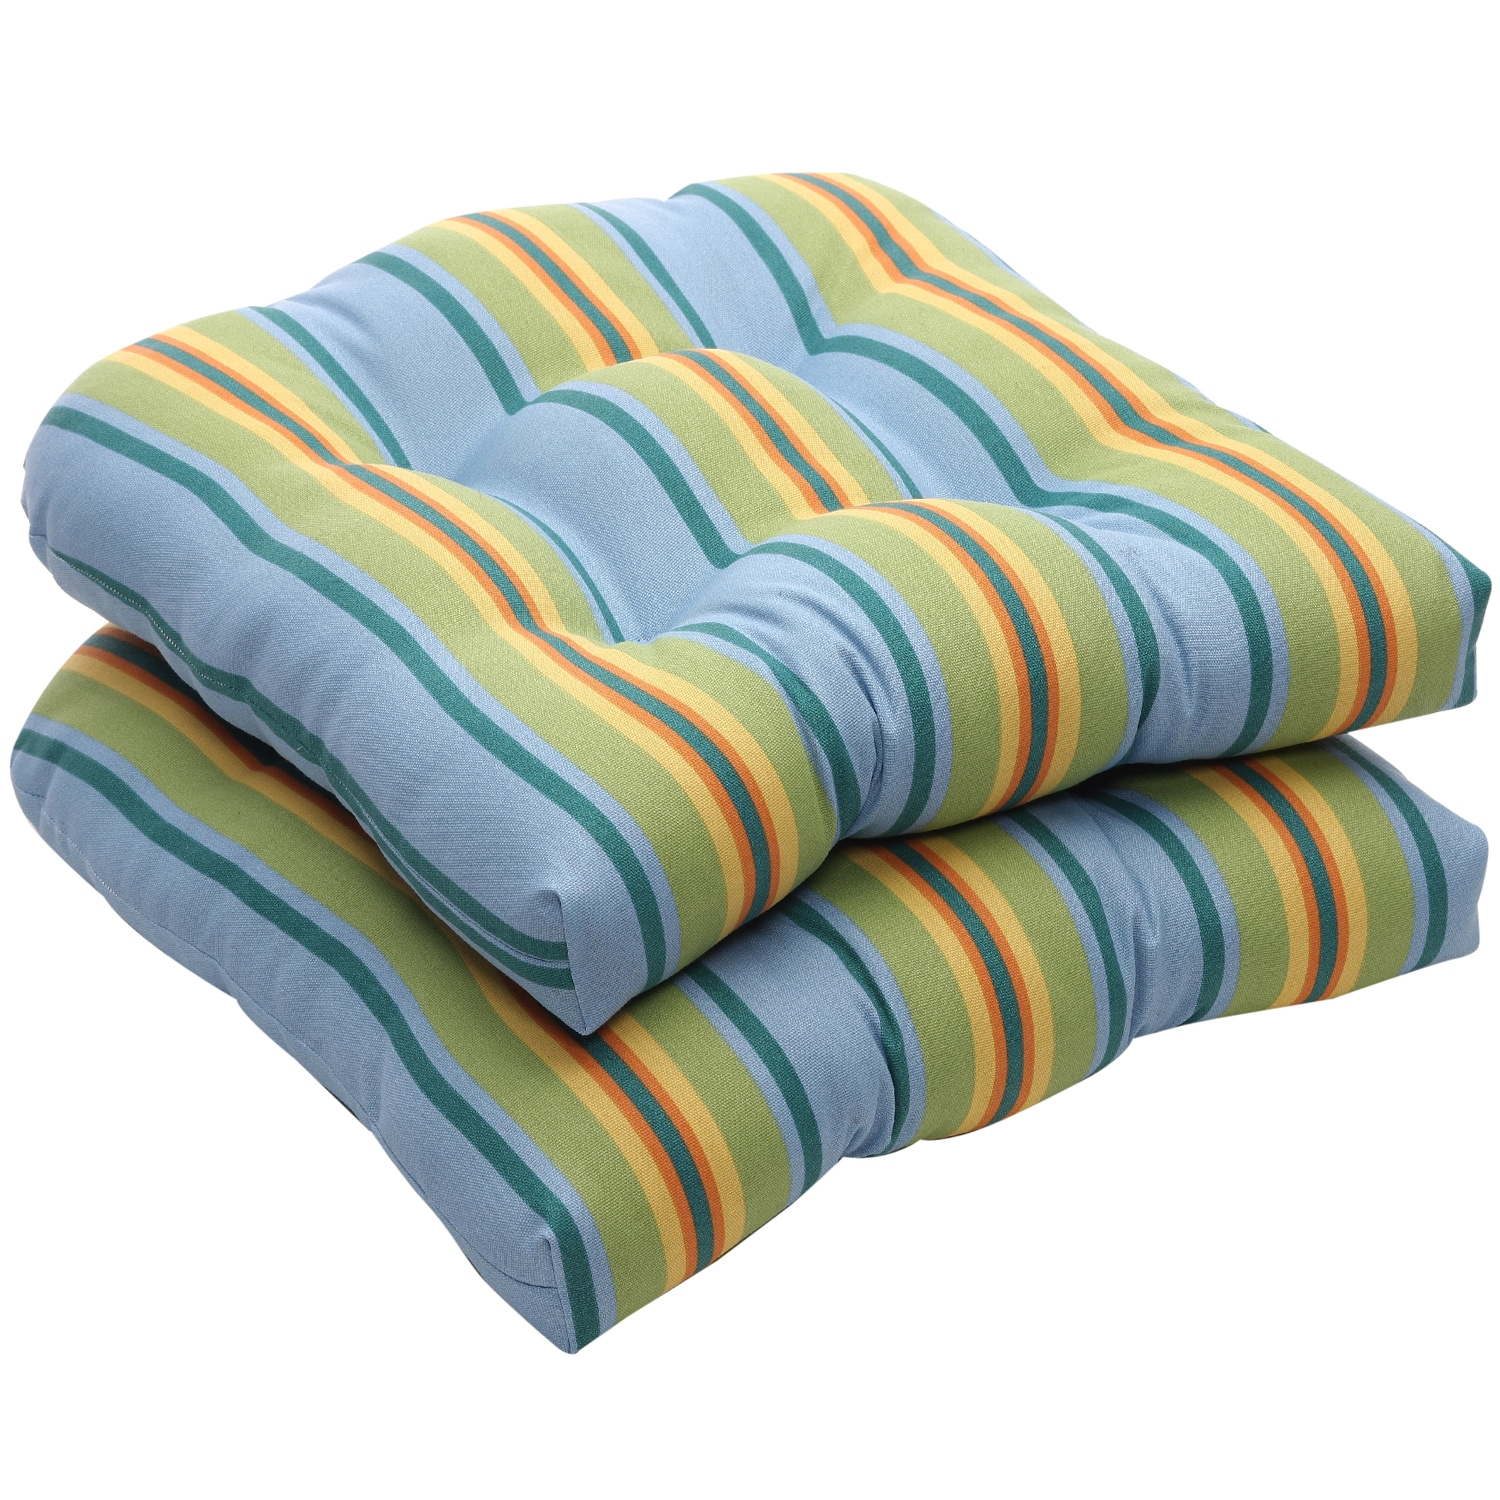 Outdoor Blue and Green Stripe Wicker Seat Cushions (Set of 2)